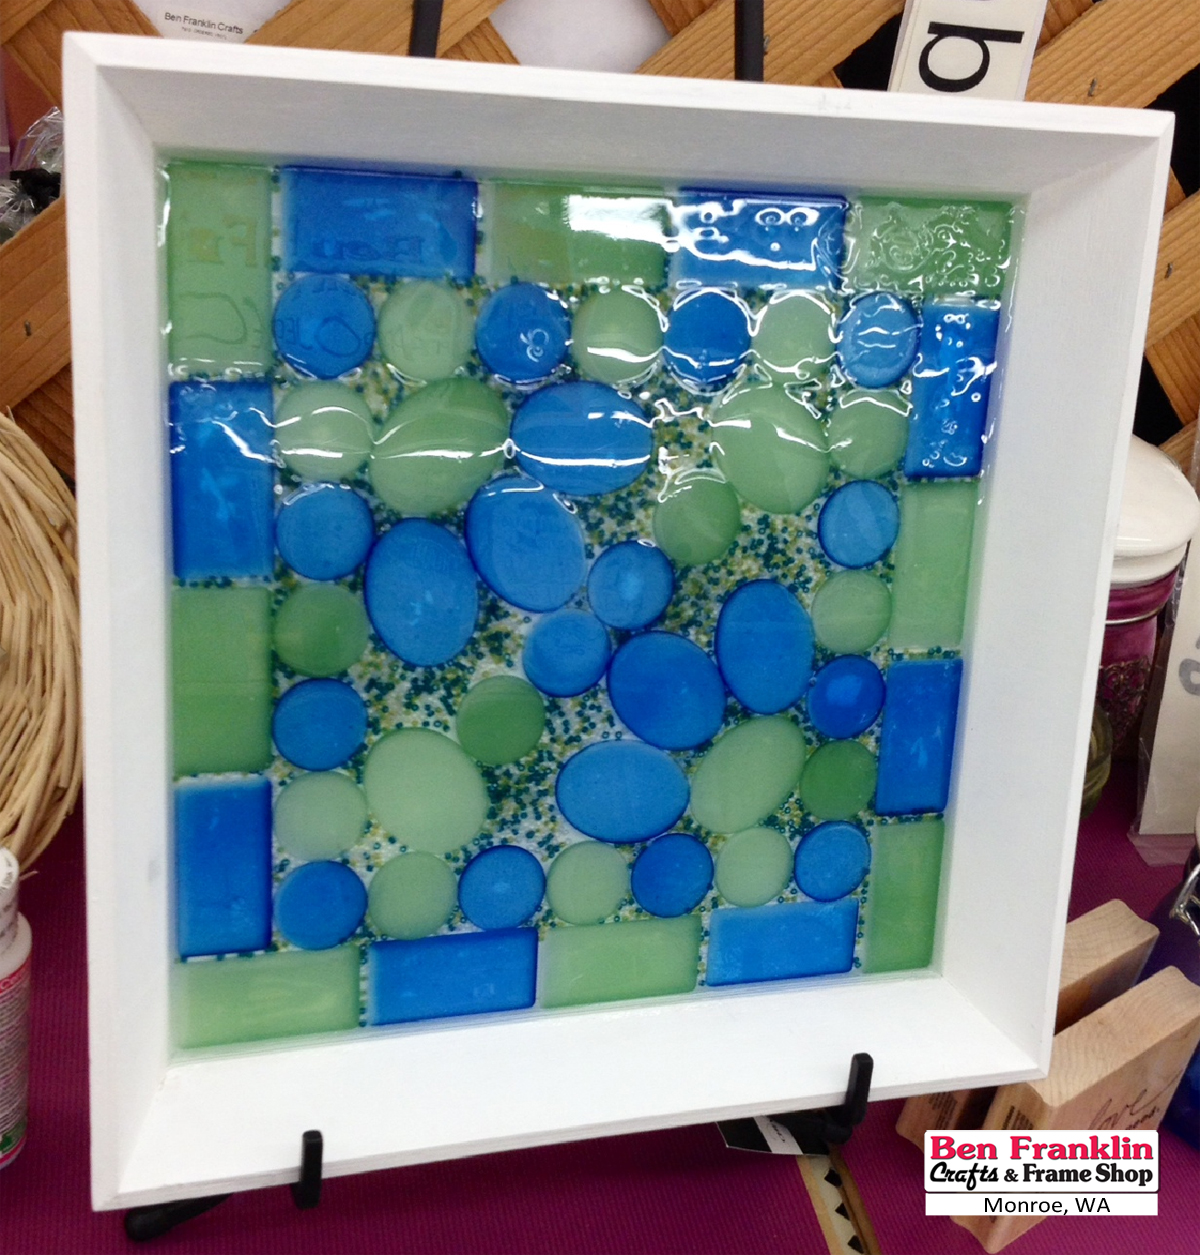 Ben Franklin Crafts and Frame Shop, Monroe, WA: DIY Sea Glass Tile Tray